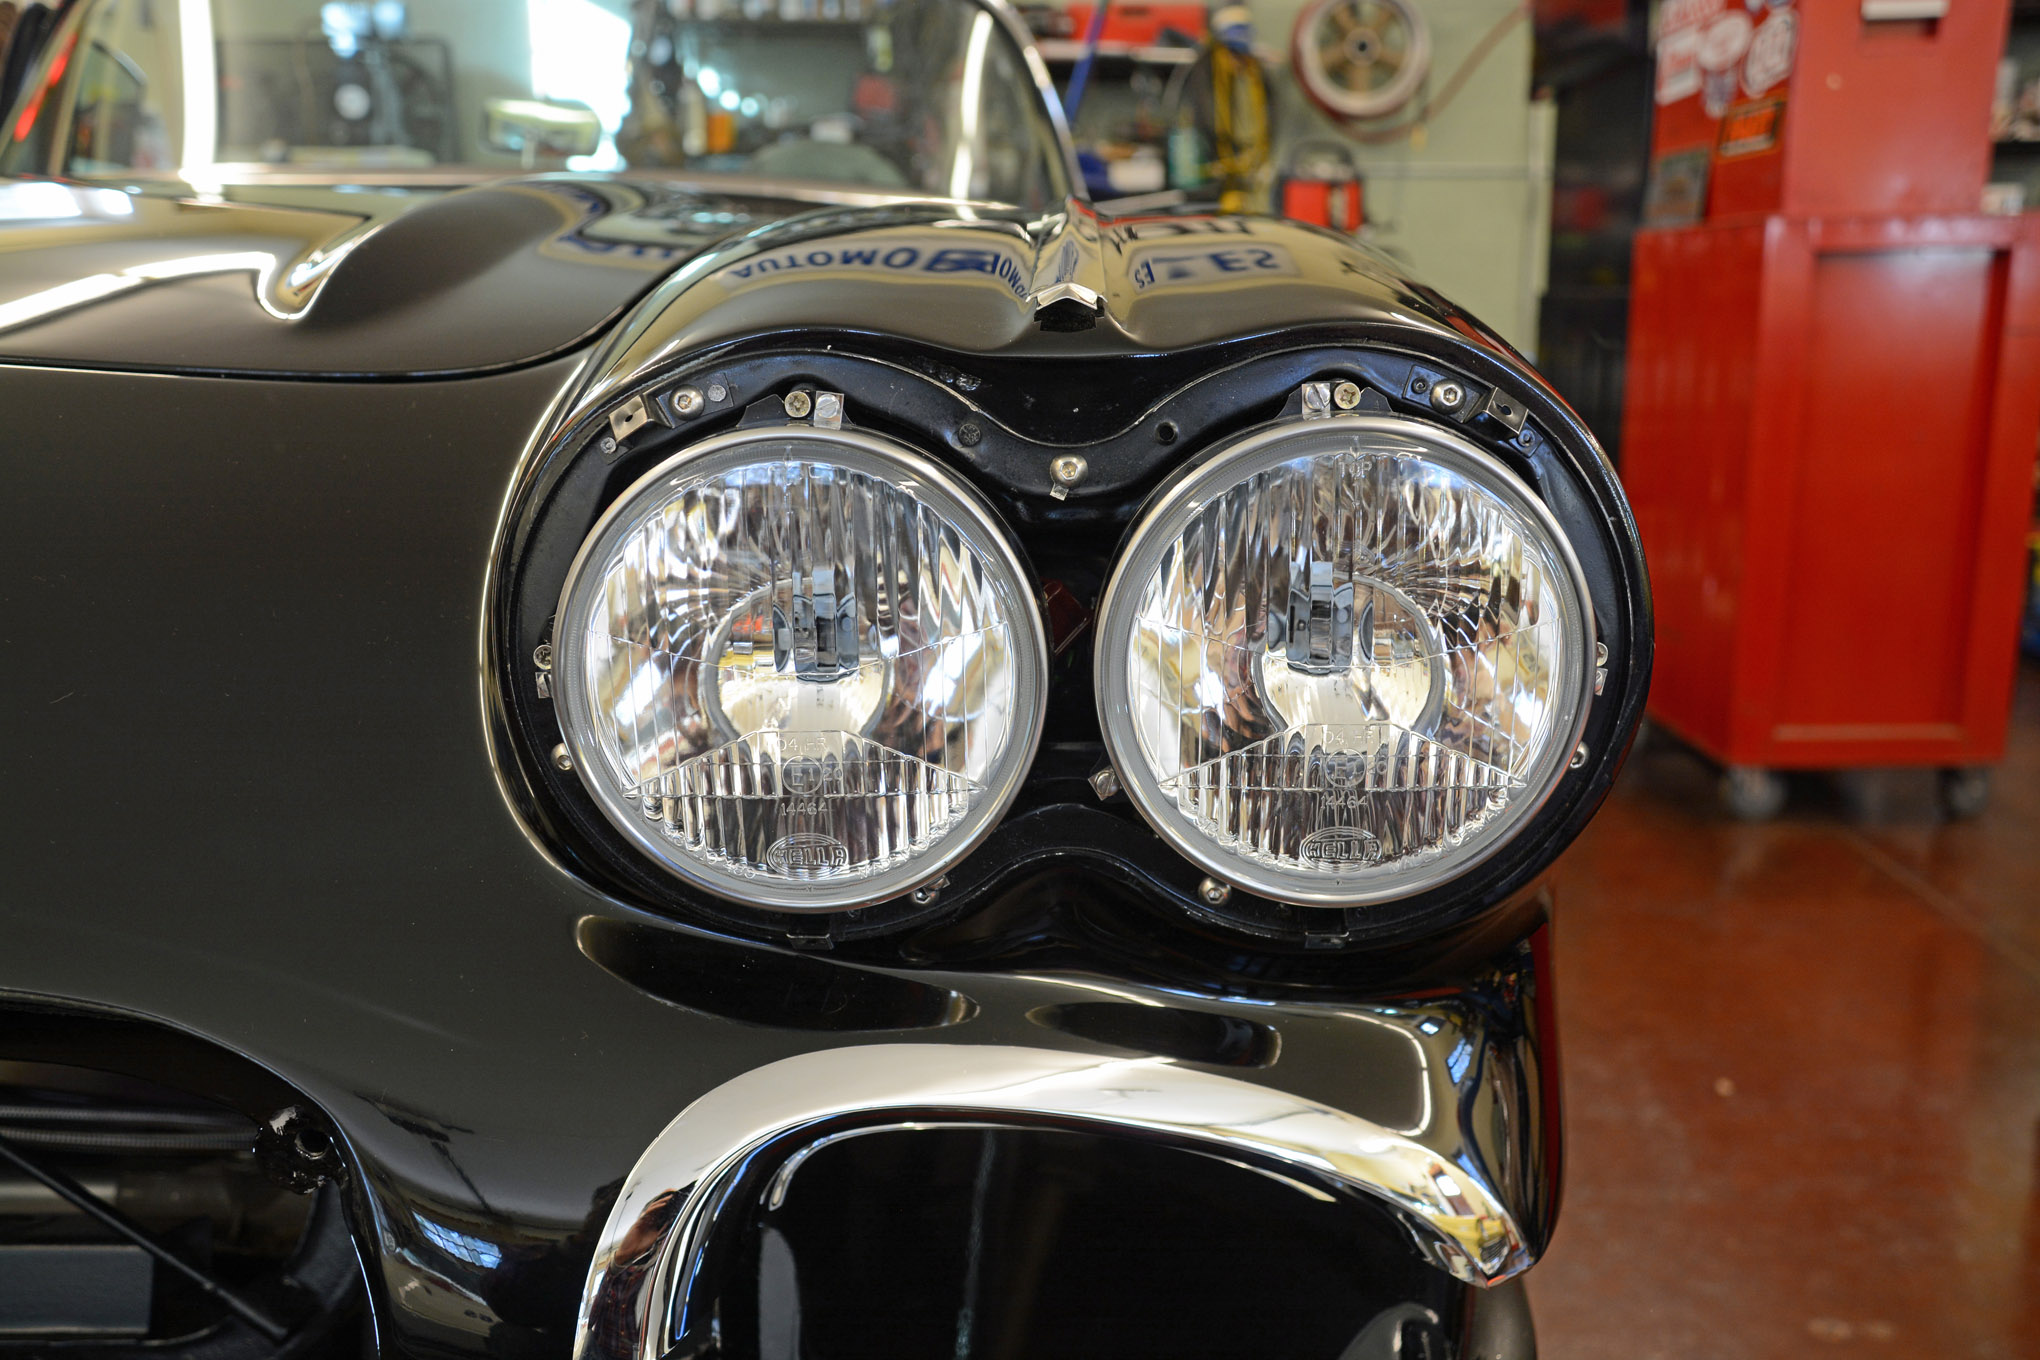 Converting 1958 1970 Chevy Headlights To Halogen Hot Charging System Wiring Rod Network